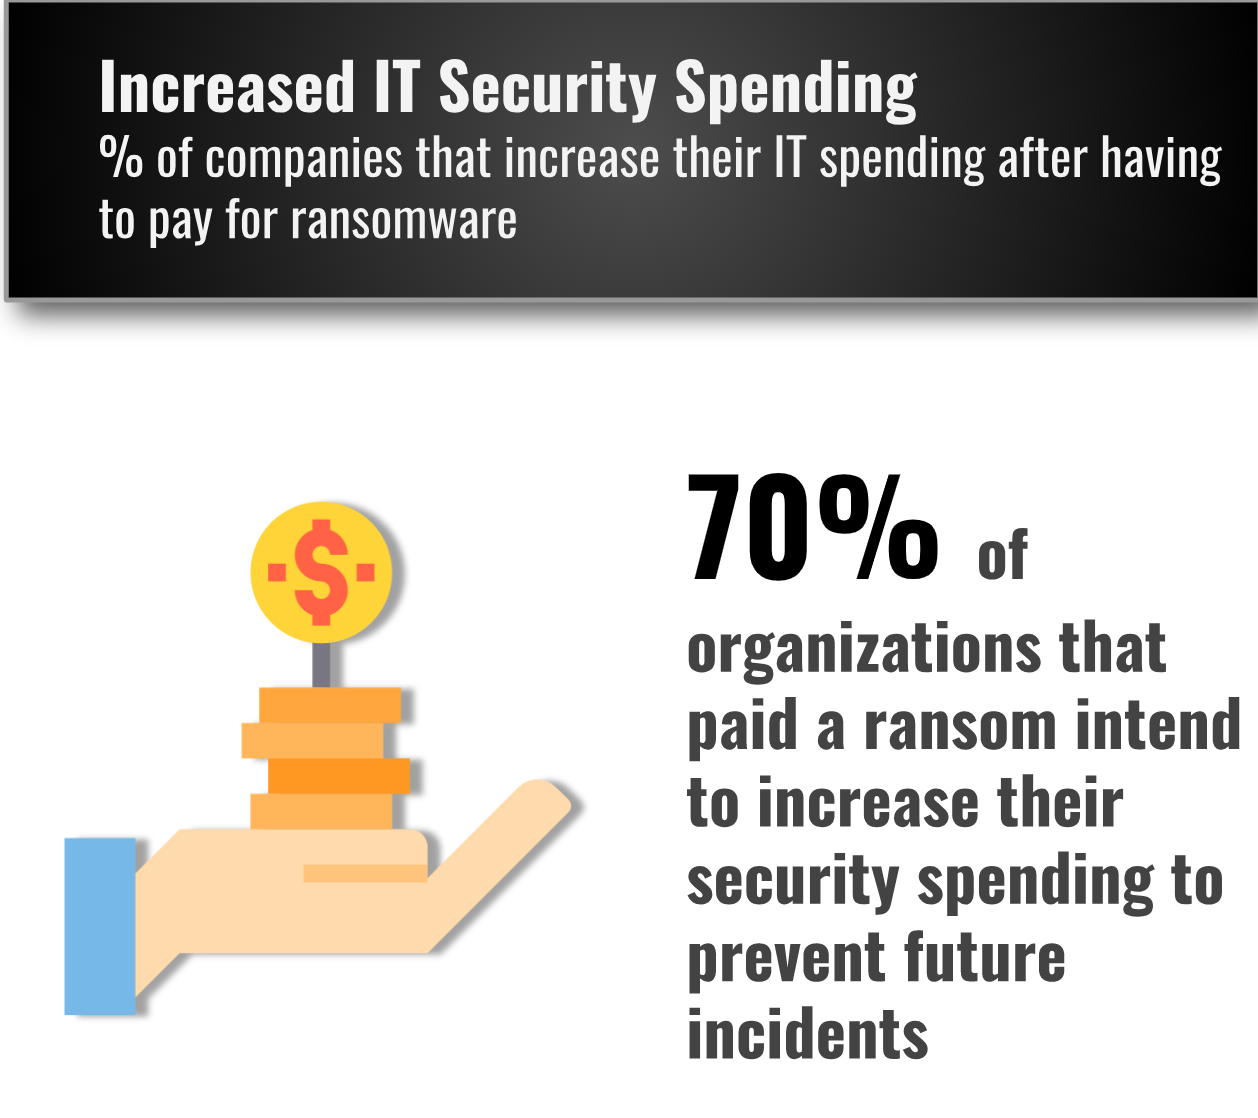 Companies increase IT security spending after a Ransomware attack